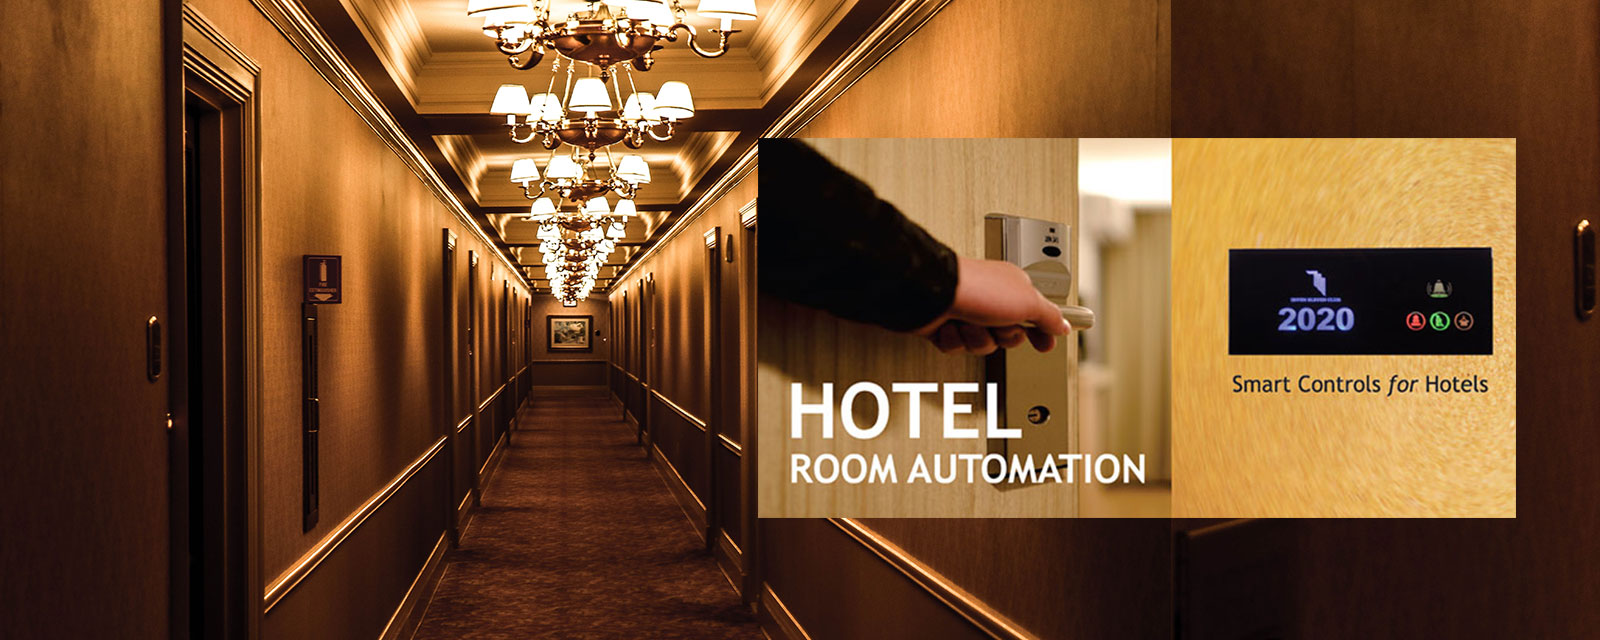 Hotel Room Automation